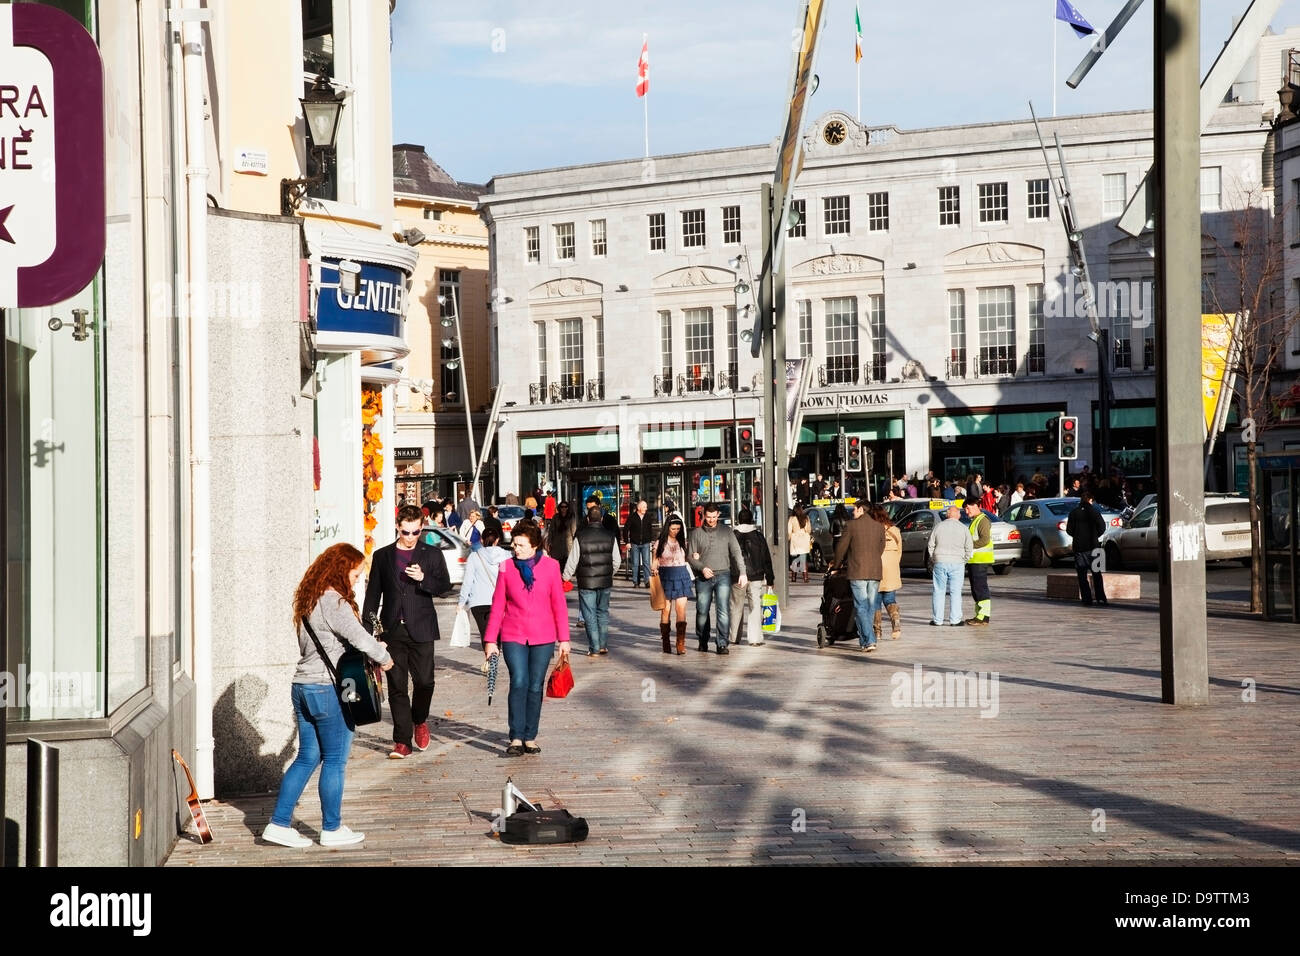 Pedestrians on patrick street;Cork city county cork ireland - Stock Image